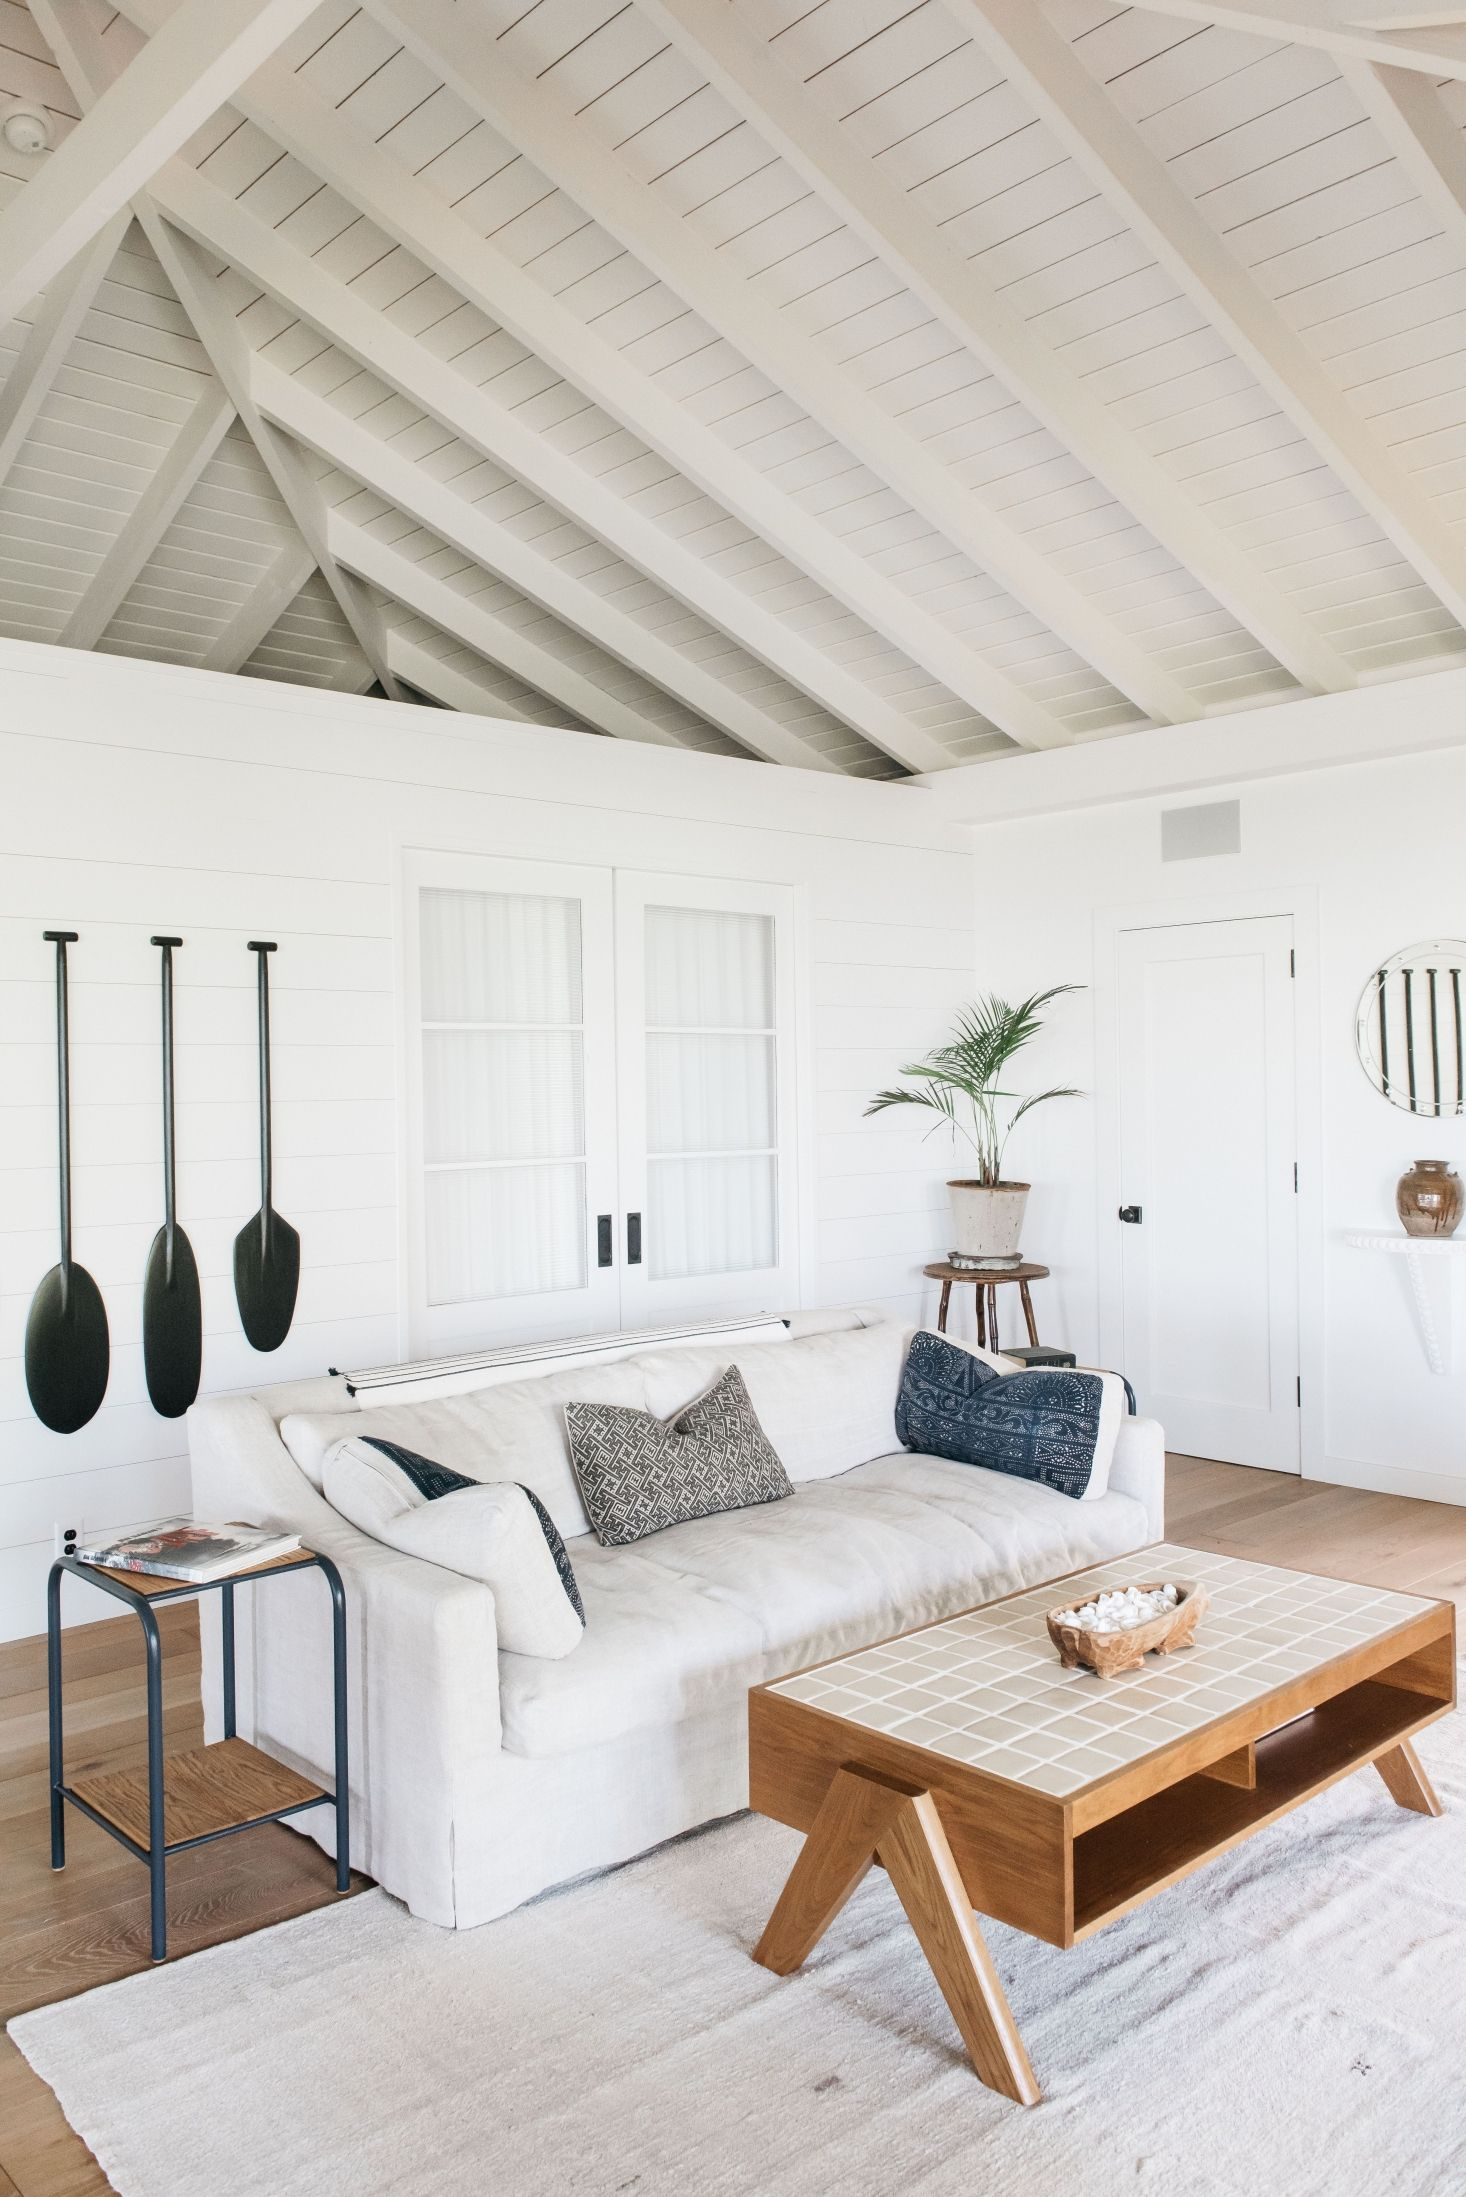 For more cottage style cladding see Remodeling 101